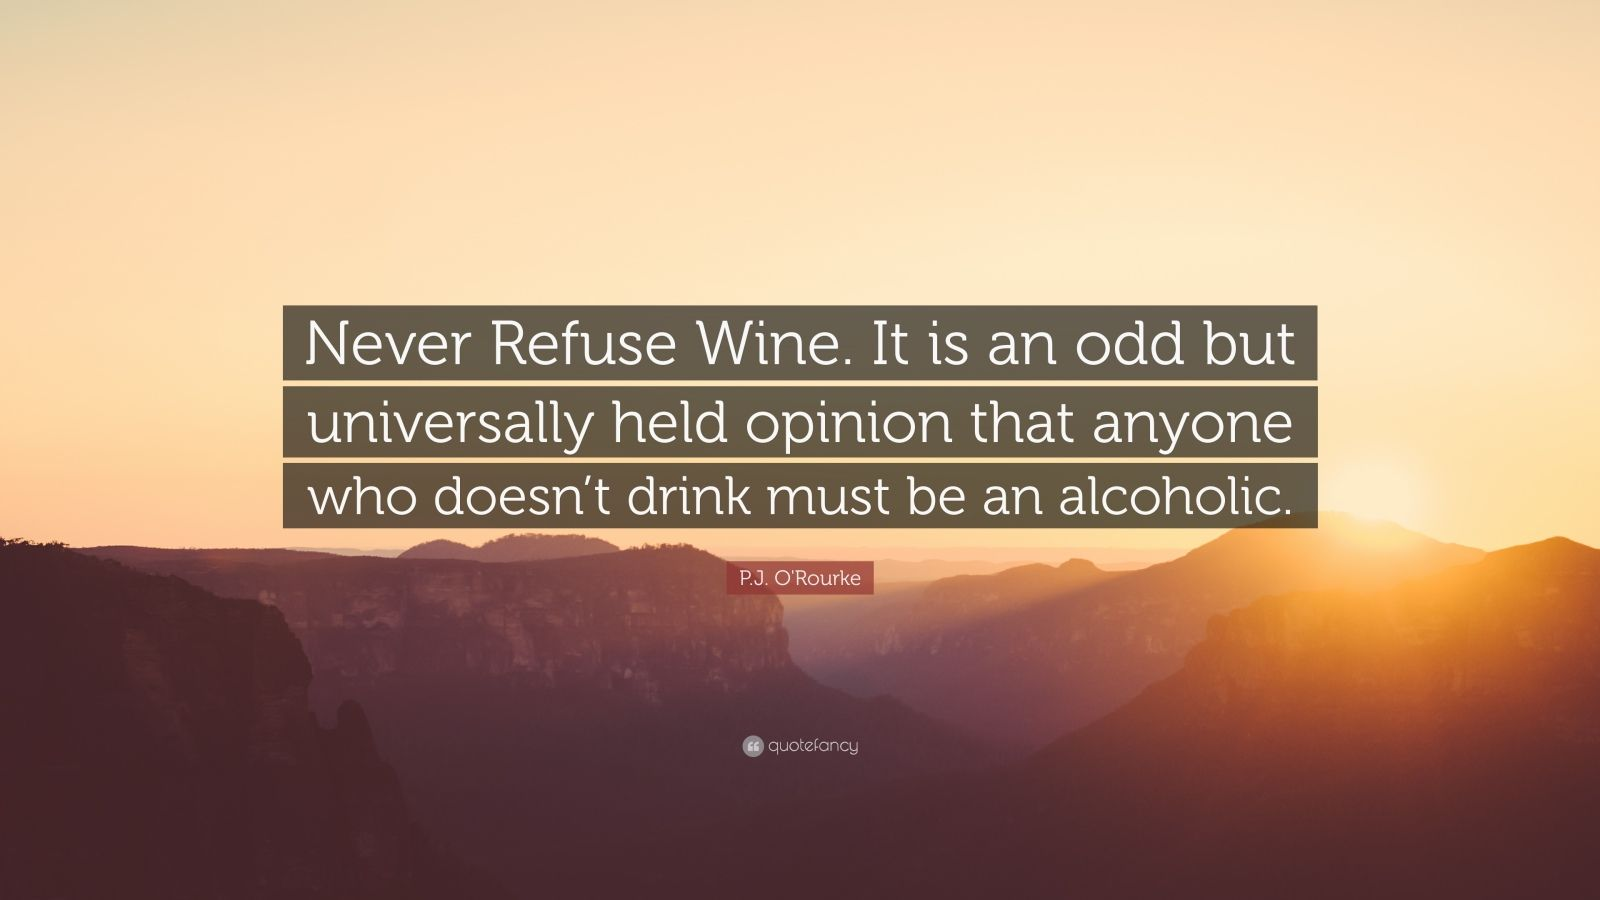 "P.J. O'Rourke Quote: ""Never Refuse Wine. It is an odd but universally held opinion that anyone who doesn't drink must be an alcoholic."""